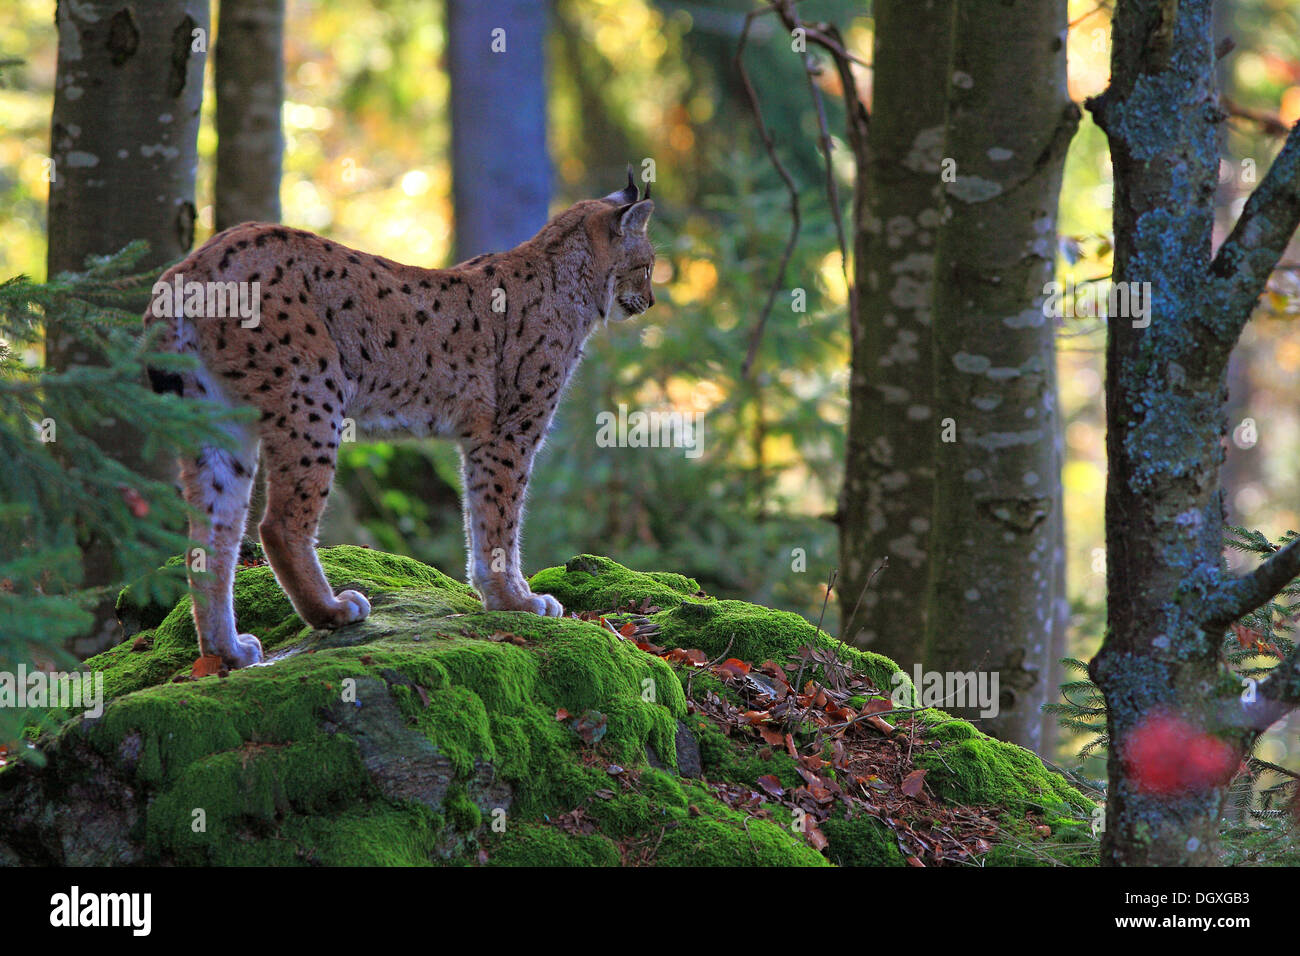 Eurasian Lynx or Northern Lynx (Lynx lynx) standing on a rock, enclosure area, Bavarian Forest National Park, Bavaria - Stock Image